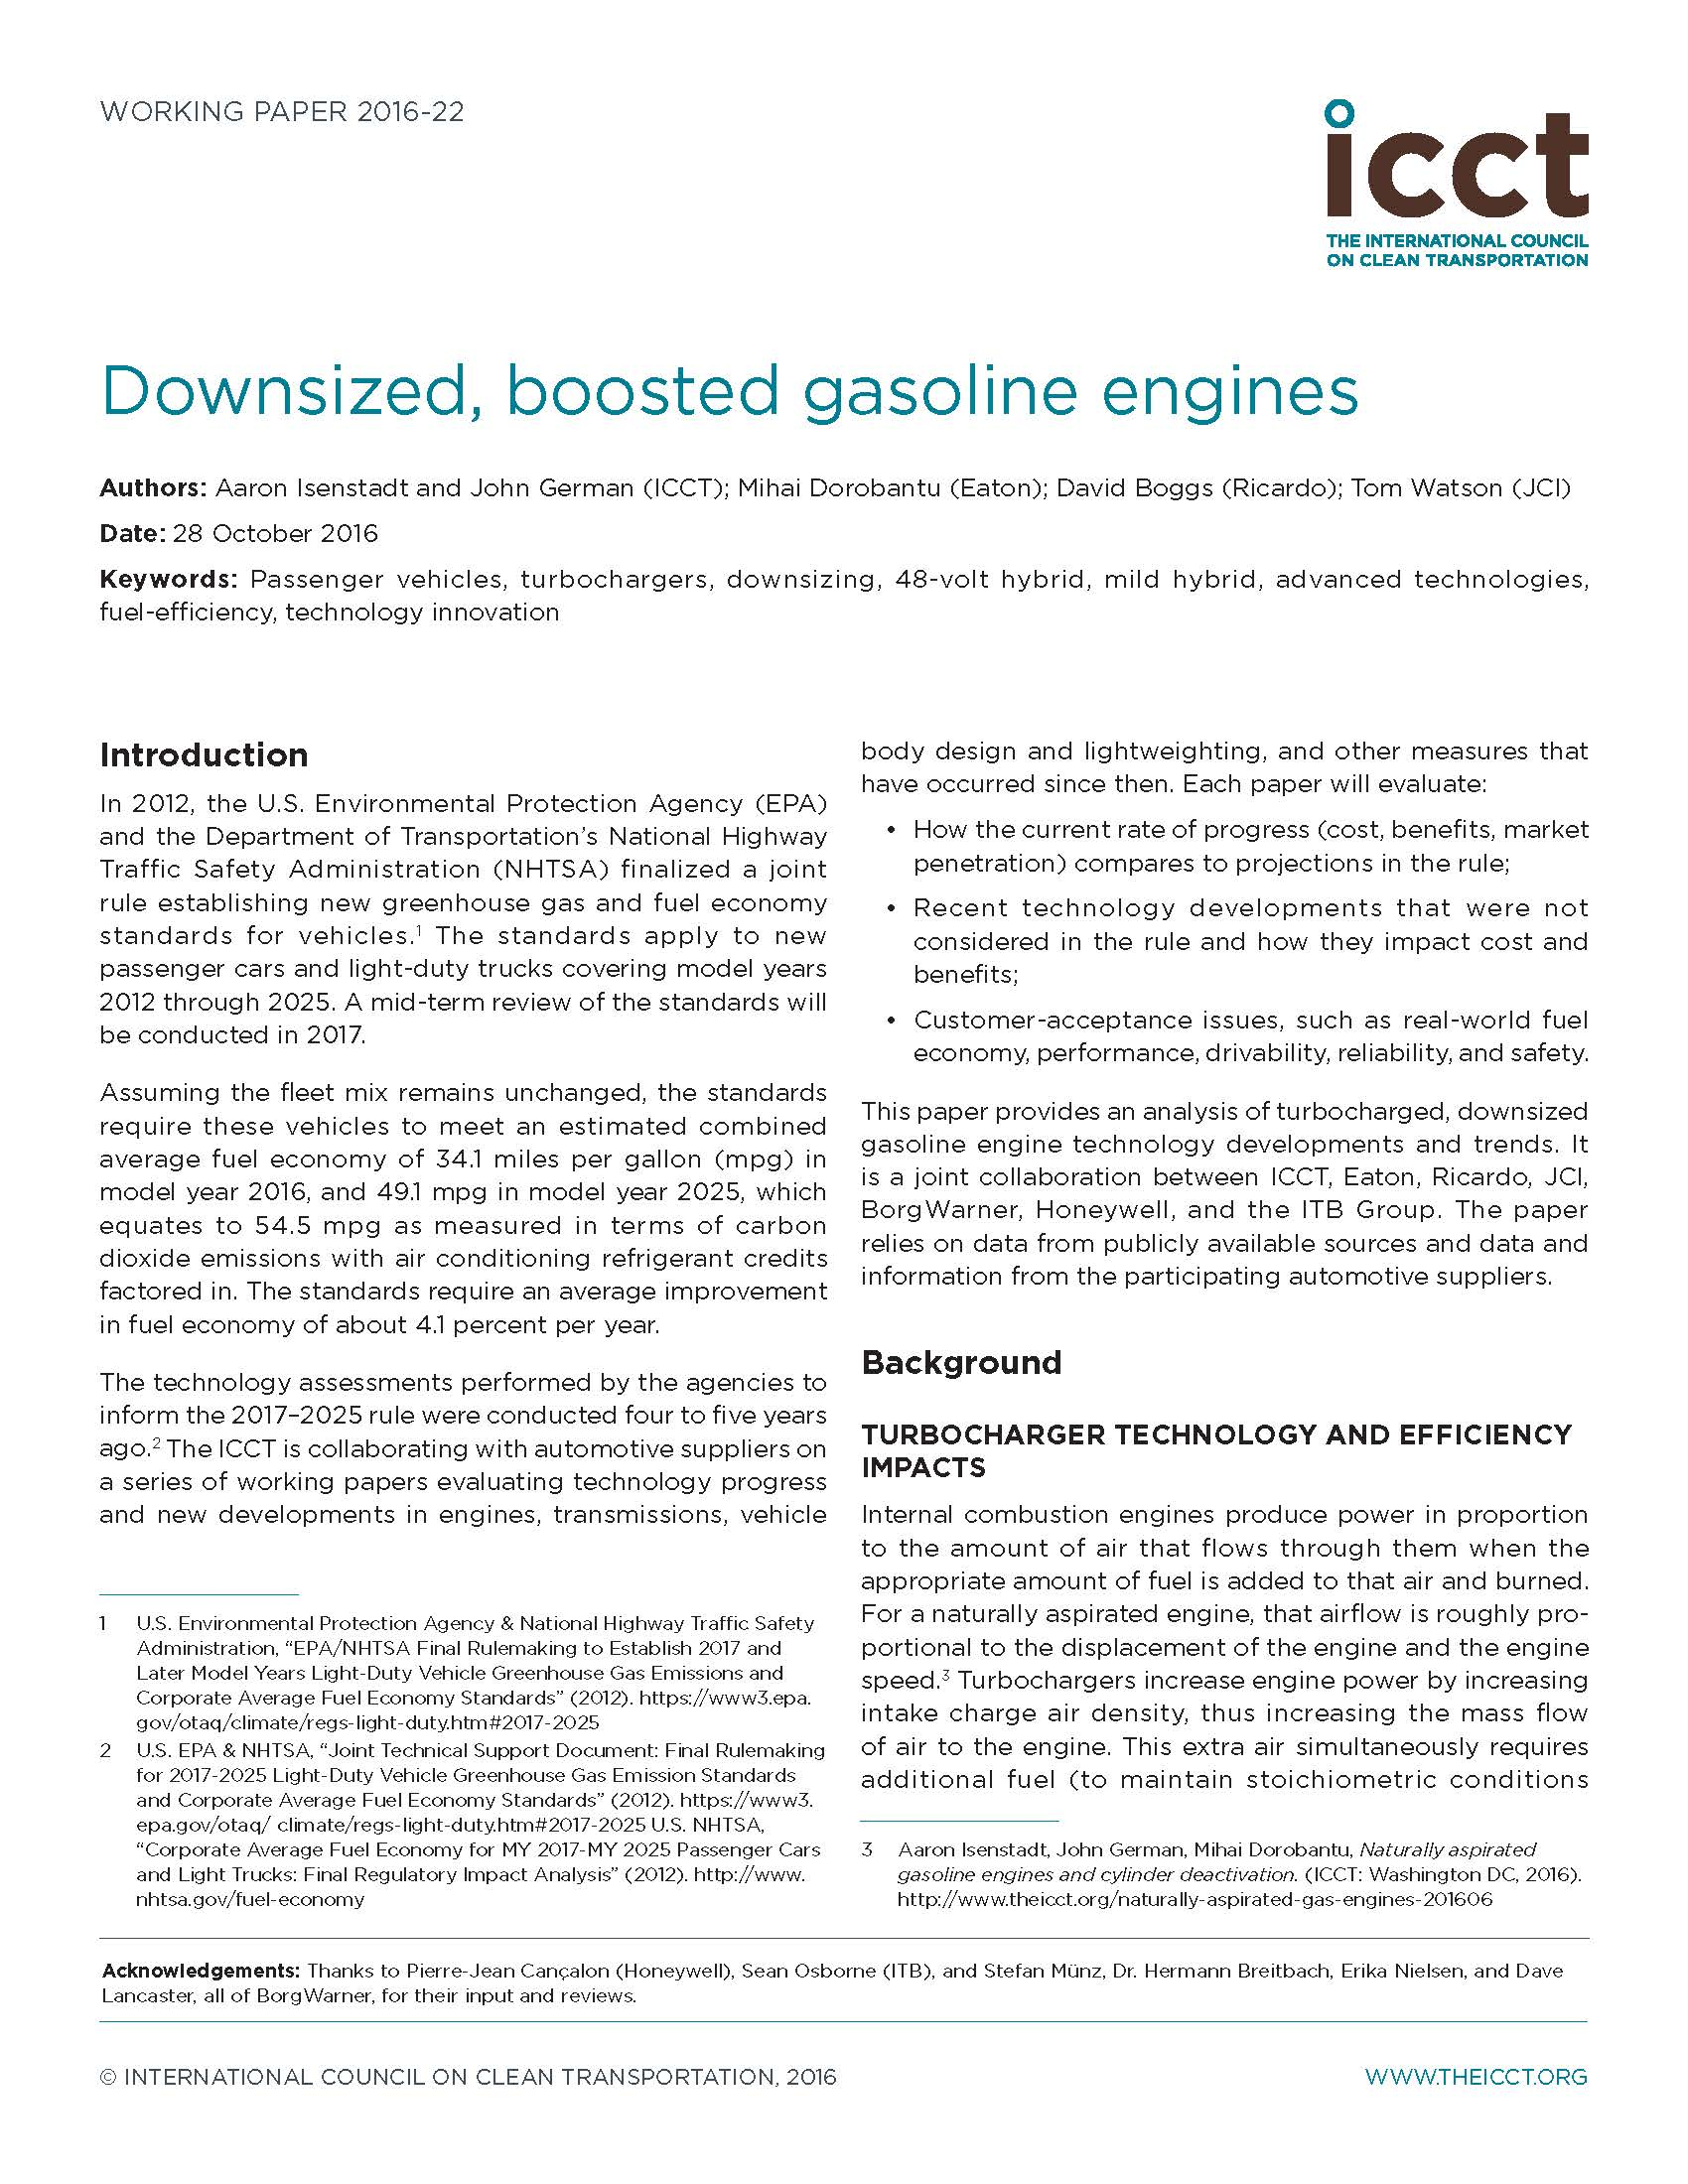 Downsized, Boosted Gasoline Engines